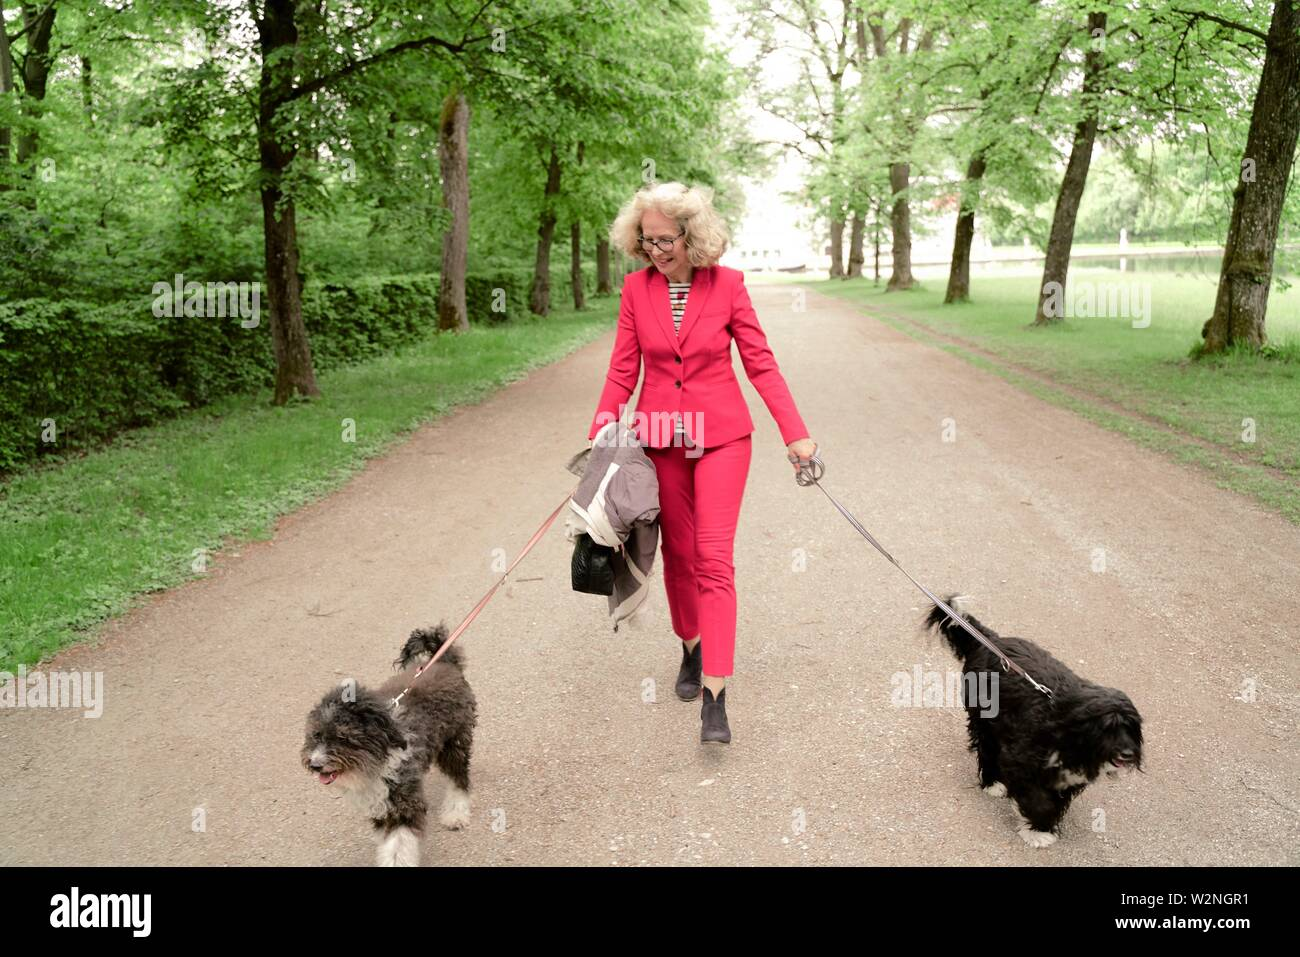 senior woman (67 years old) walking with two dogs on leash in park, in Nymphenburg, Munich, Germany. - Stock Image